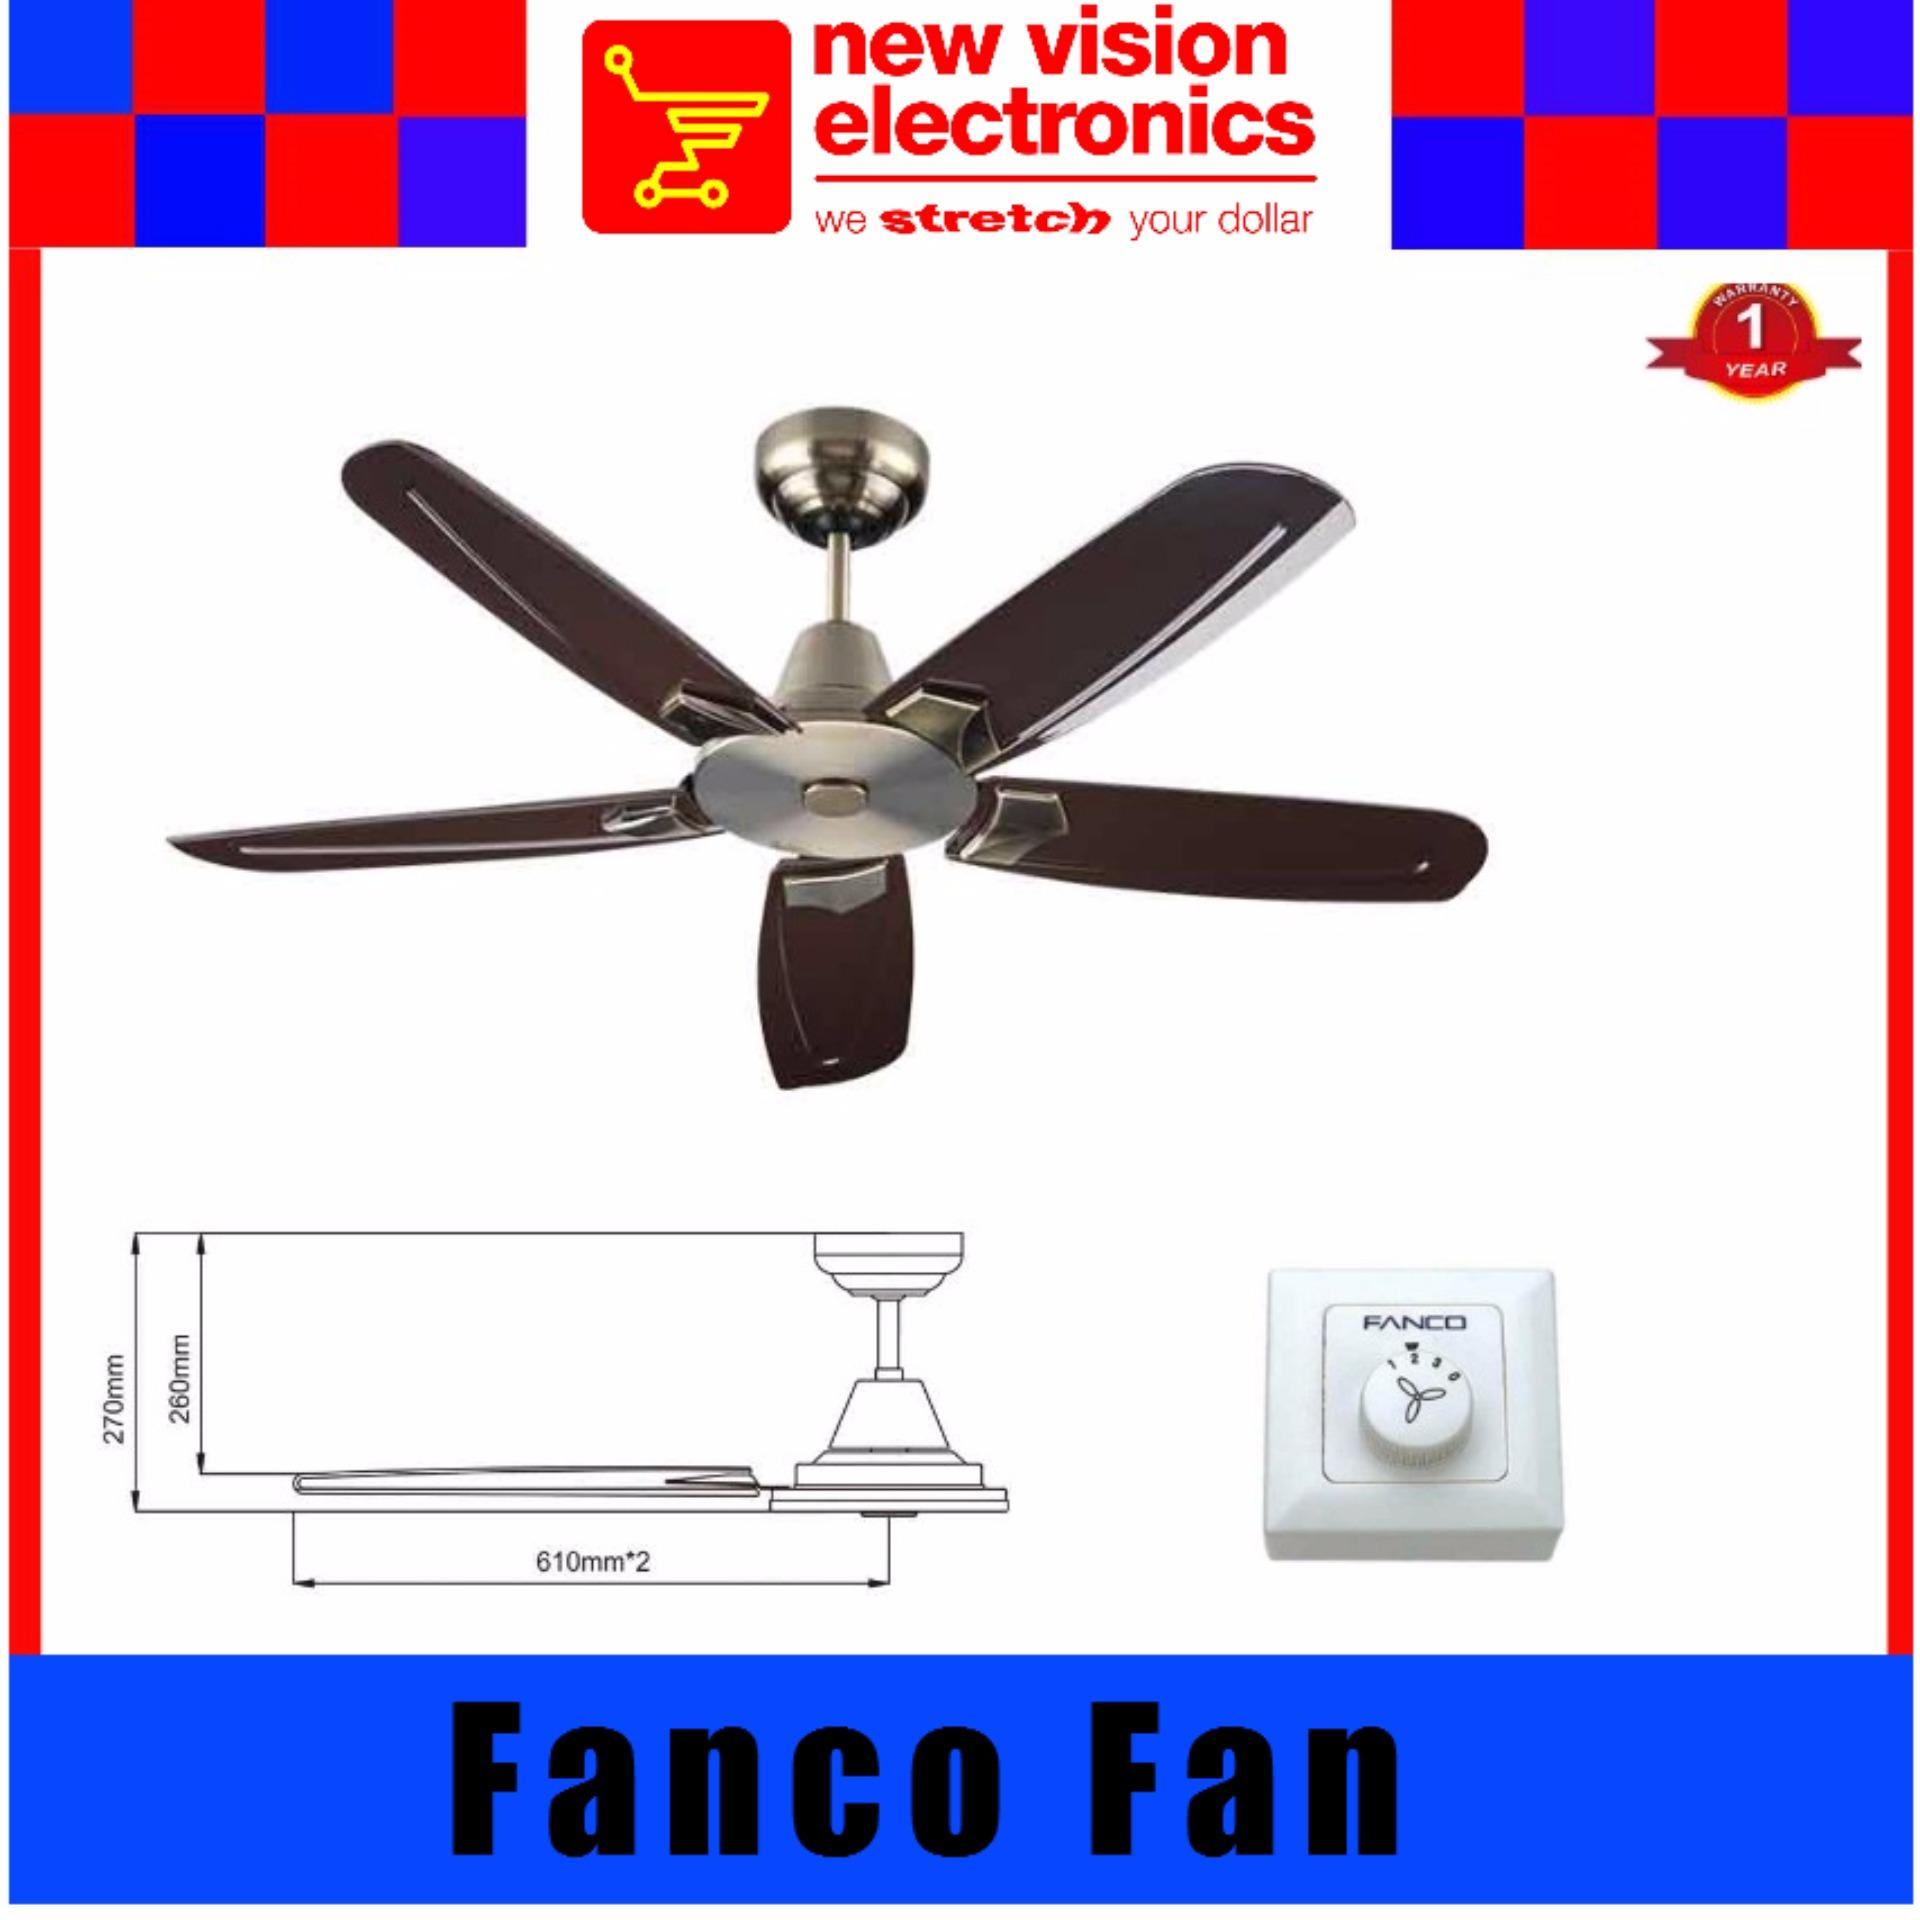 Fanco Ffm6000 48 Ceiling Fan 5 Abs Blade Safety Mark Roved Life Time Warranty On Motor In Antique Brush Singapore